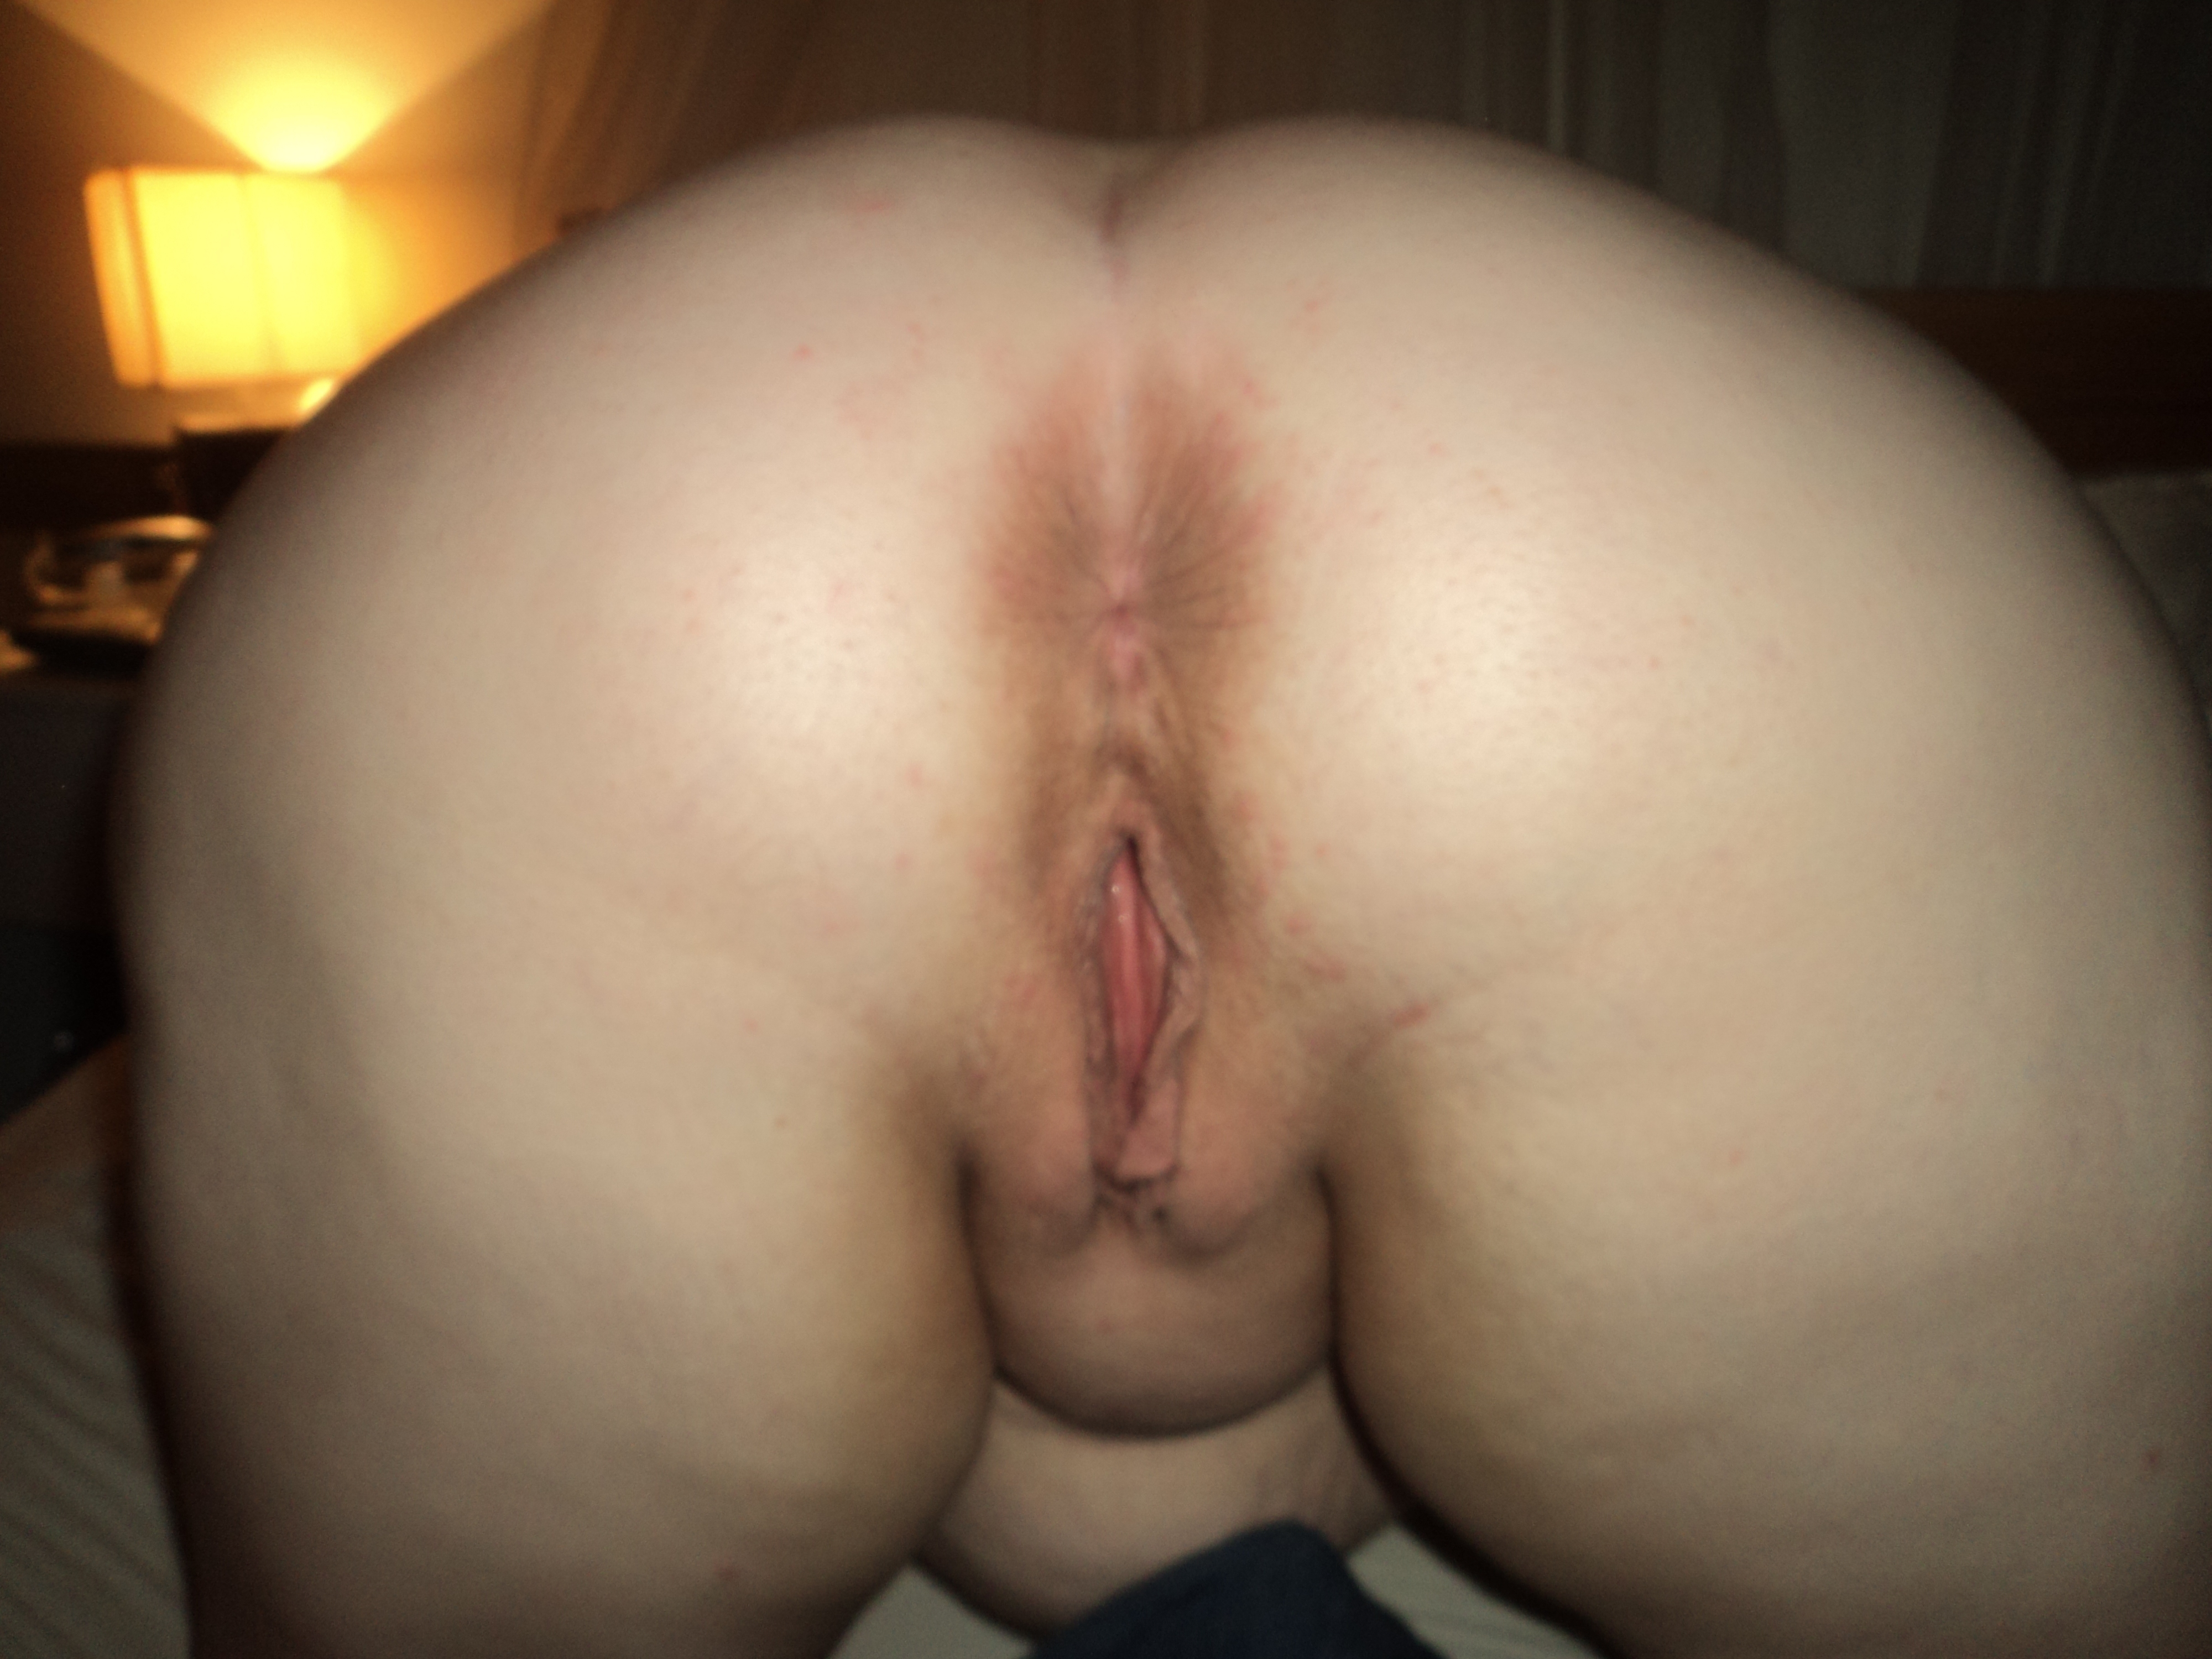 A cock in every hole